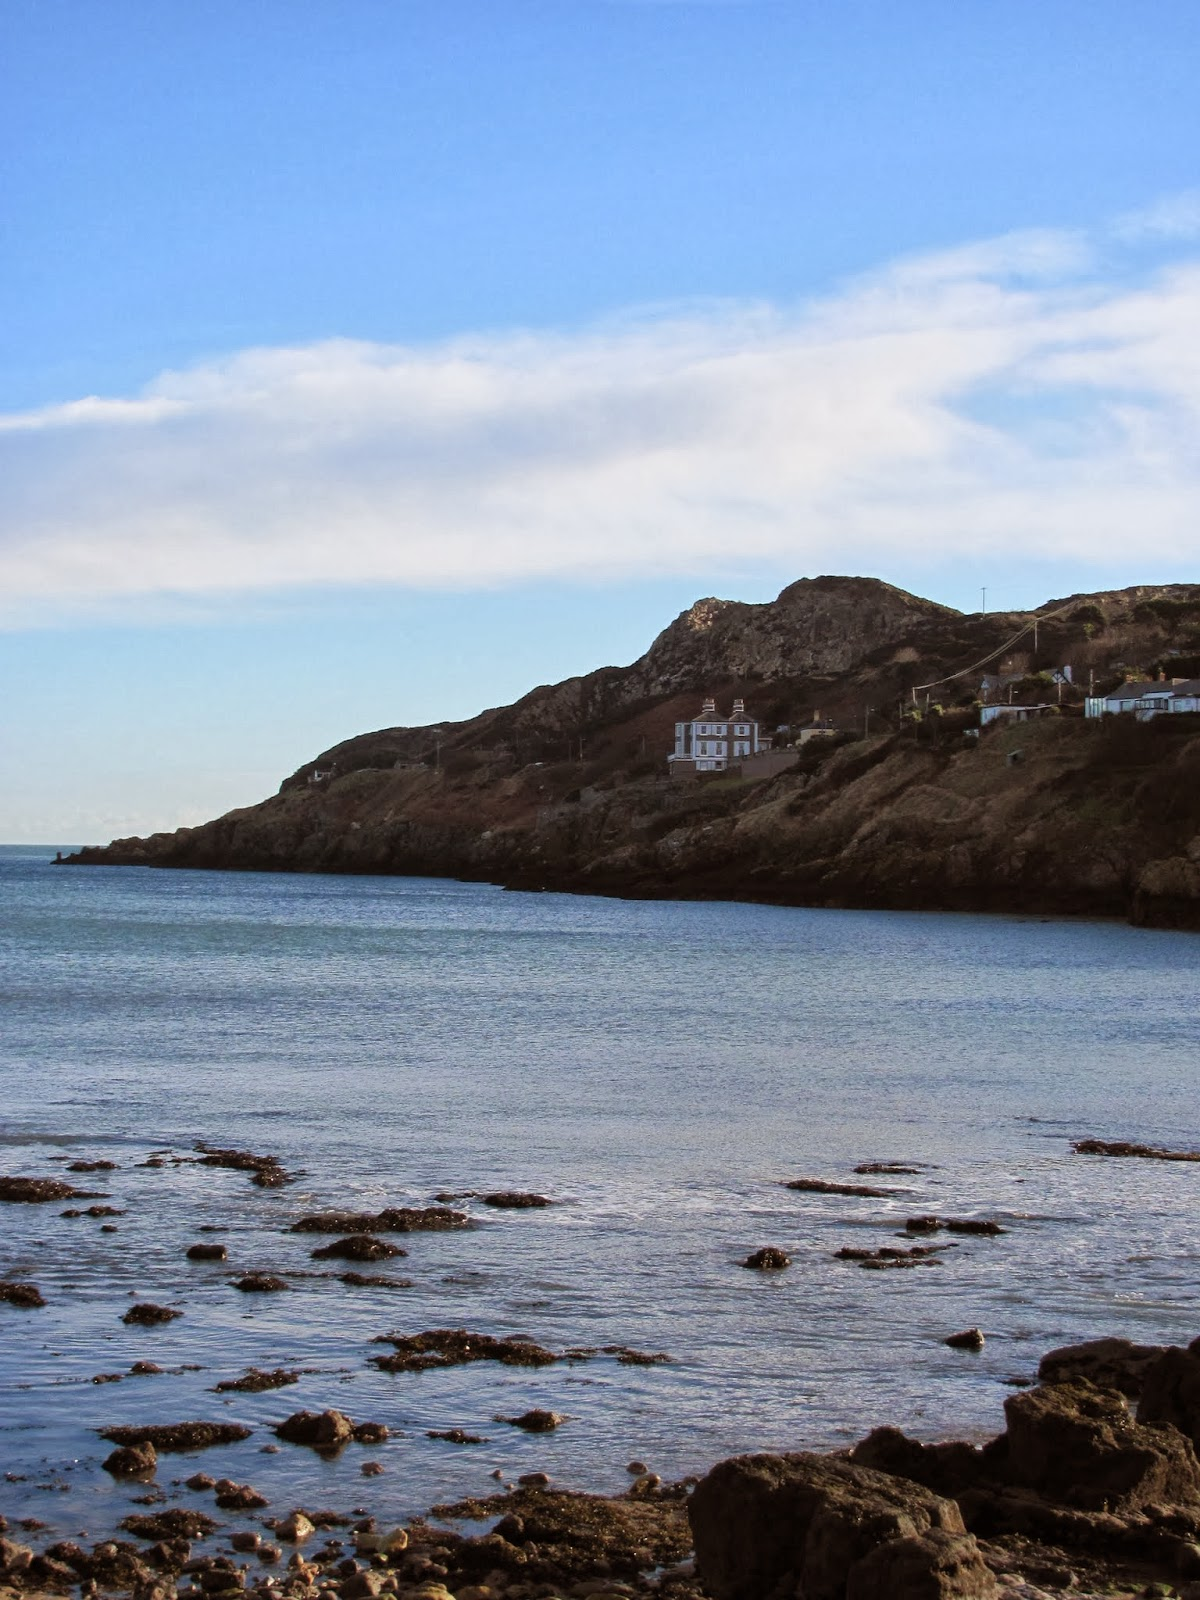 Howth Head seen from sea level